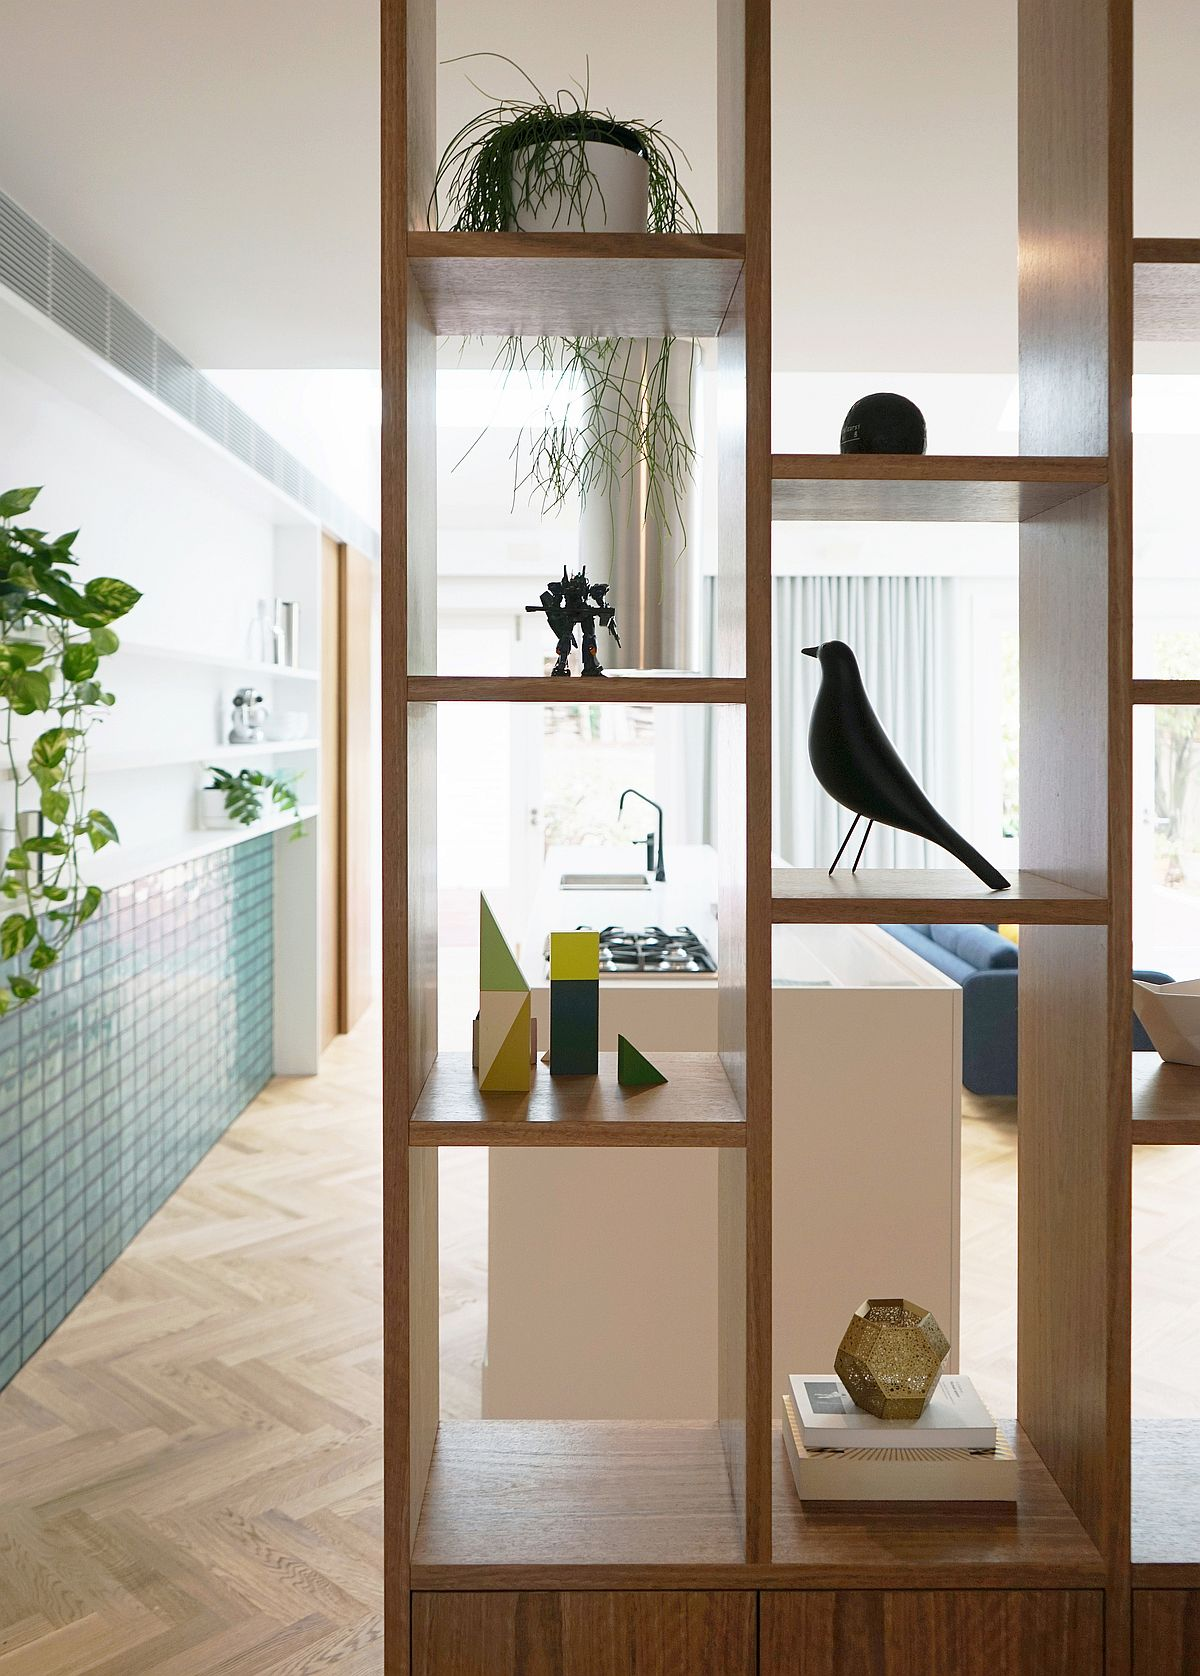 Wooden-bos-style-shelves-also-act-as-room-dividers